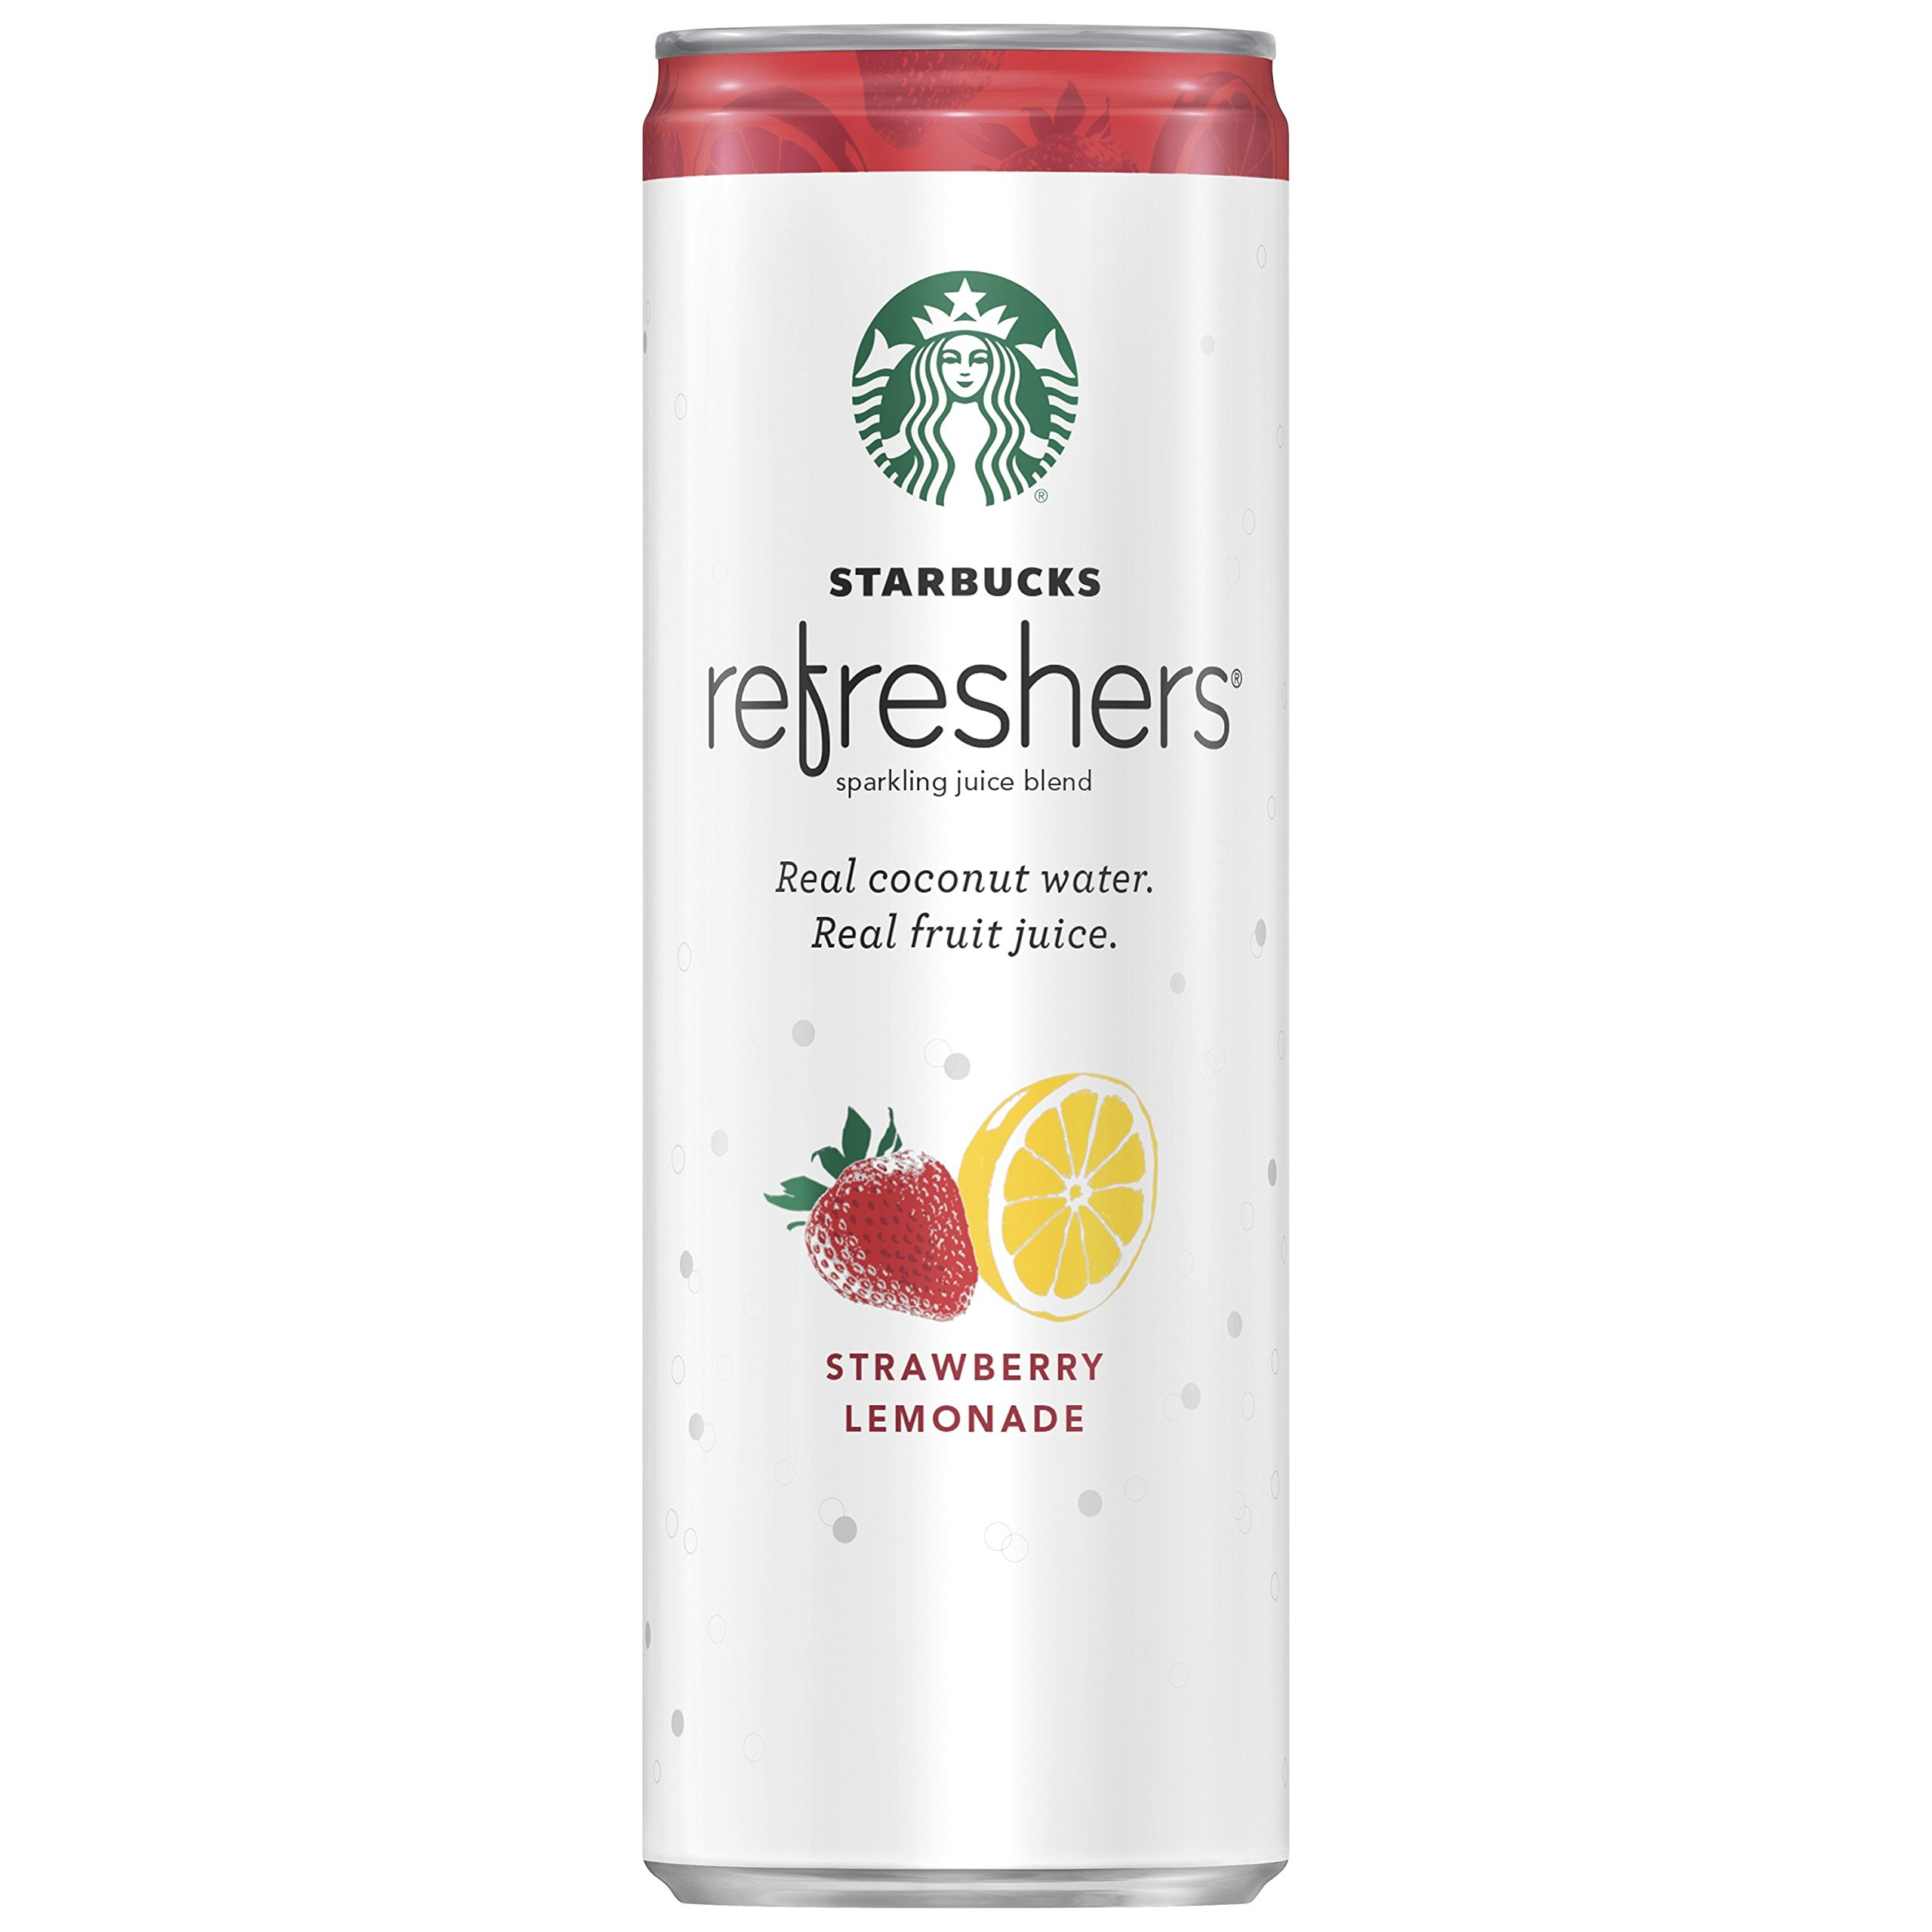 Starbucks Refreshers, Strawberry Lemonade with Coconut Water, 12 Ounce Cans, 12 Pack (Packaging May Vary)